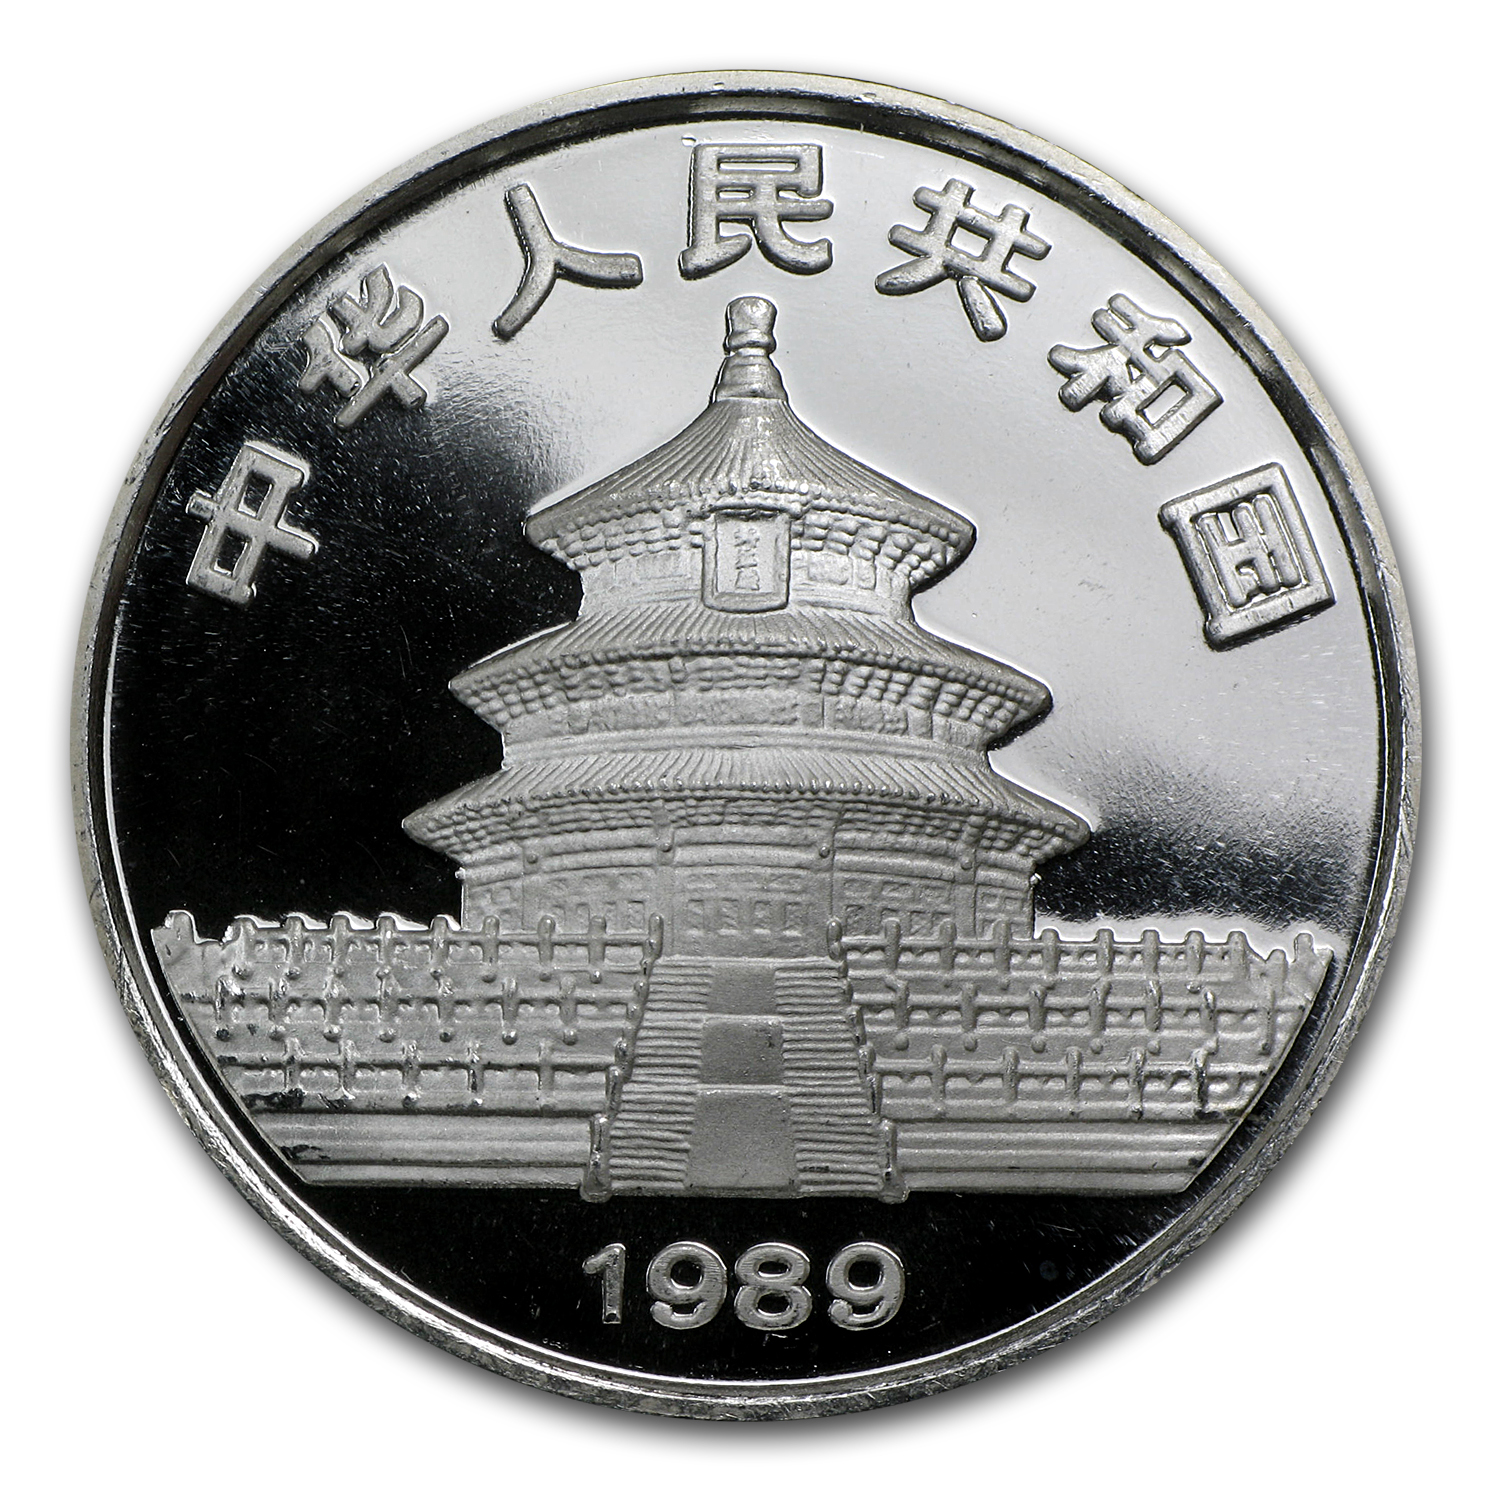 1989 Silver Chinese Pandas 1 oz (Proof) - (Capsule Only)